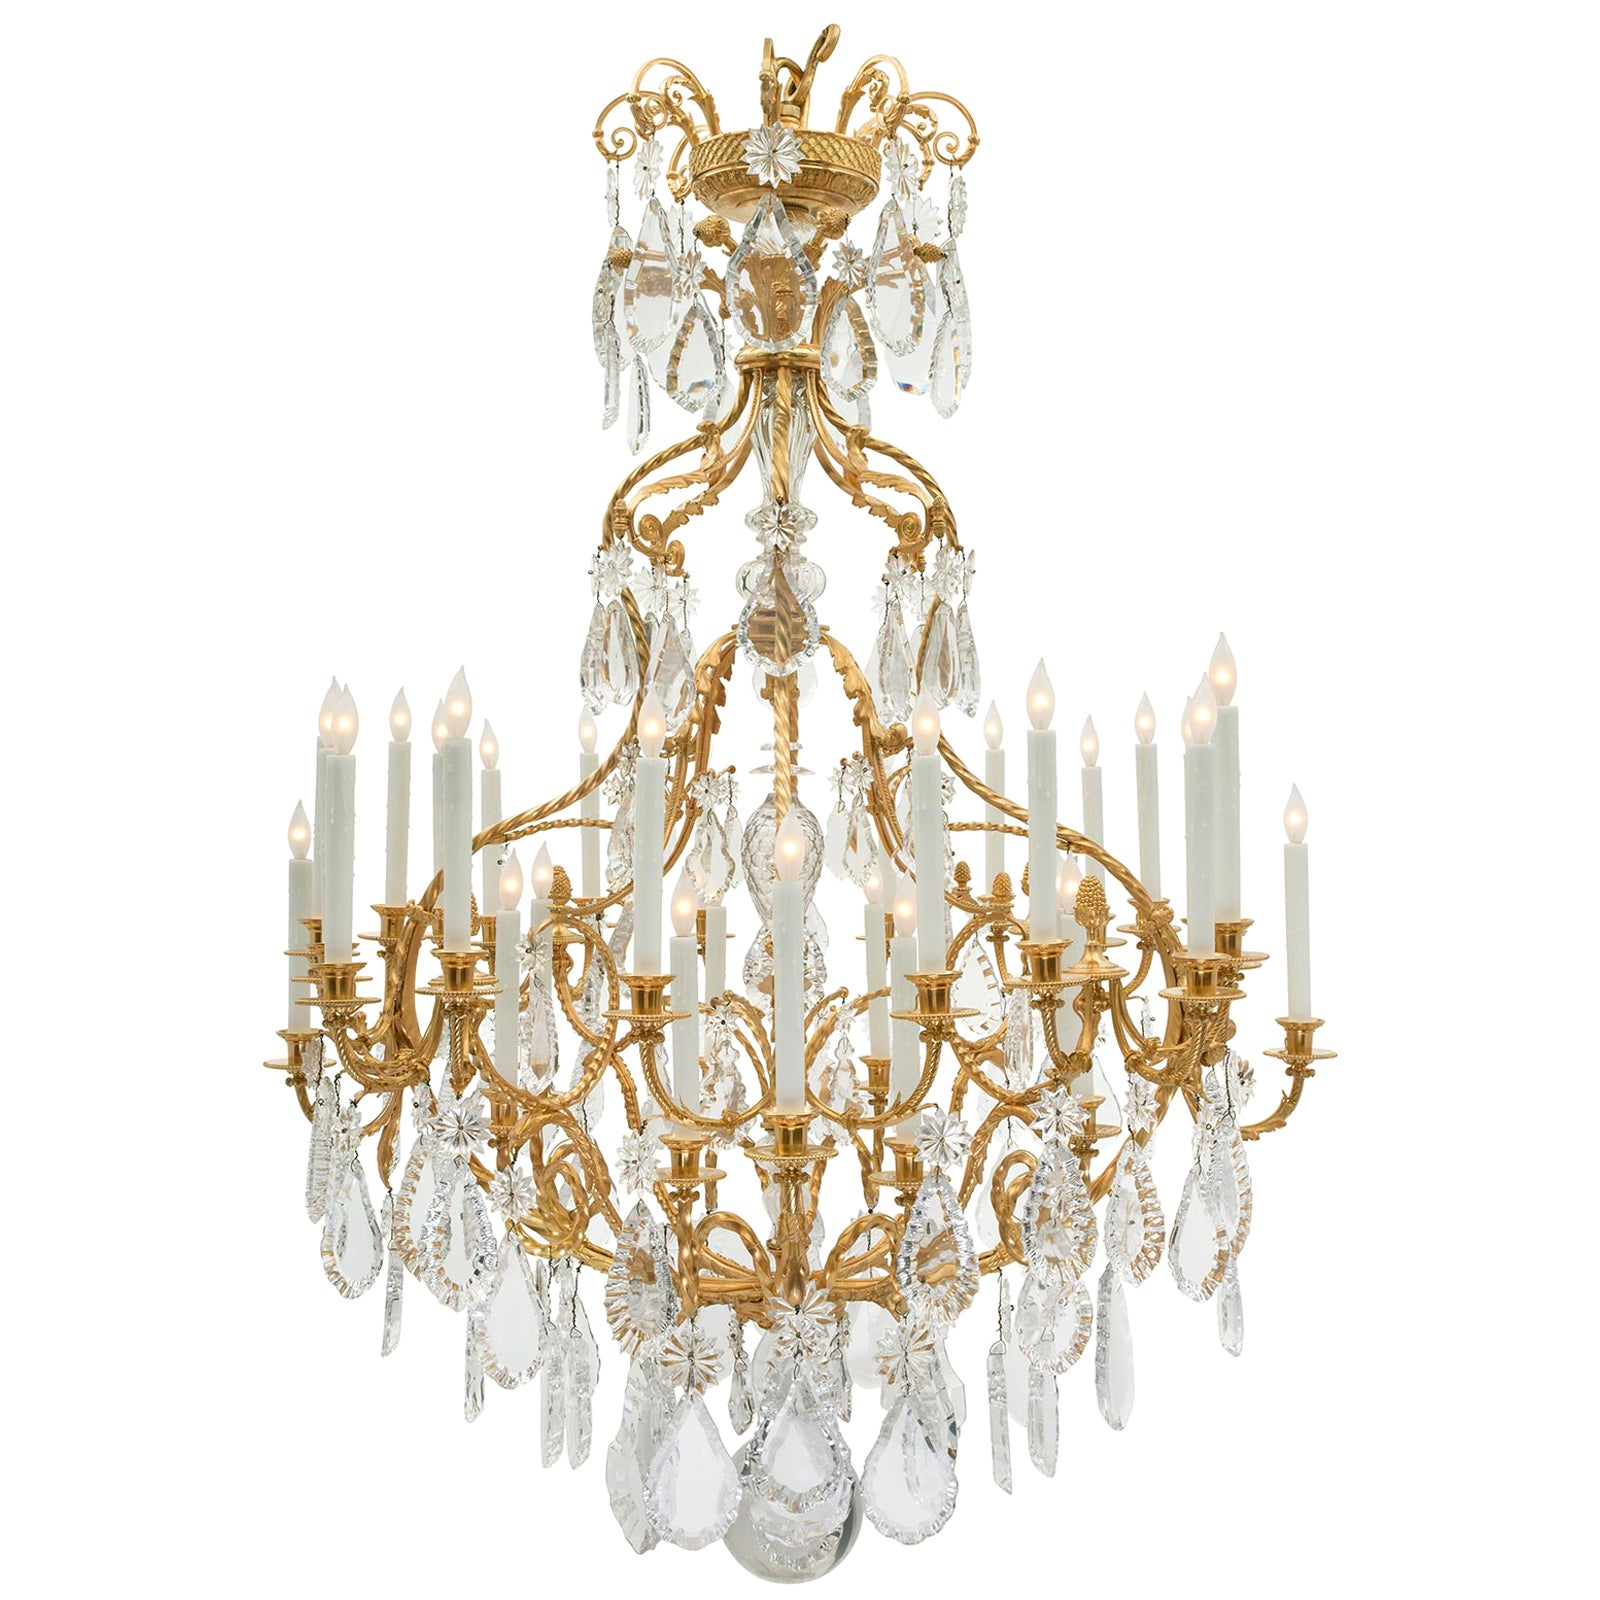 French 19th Century Louis XV Style Thirty Two Light Chandelier